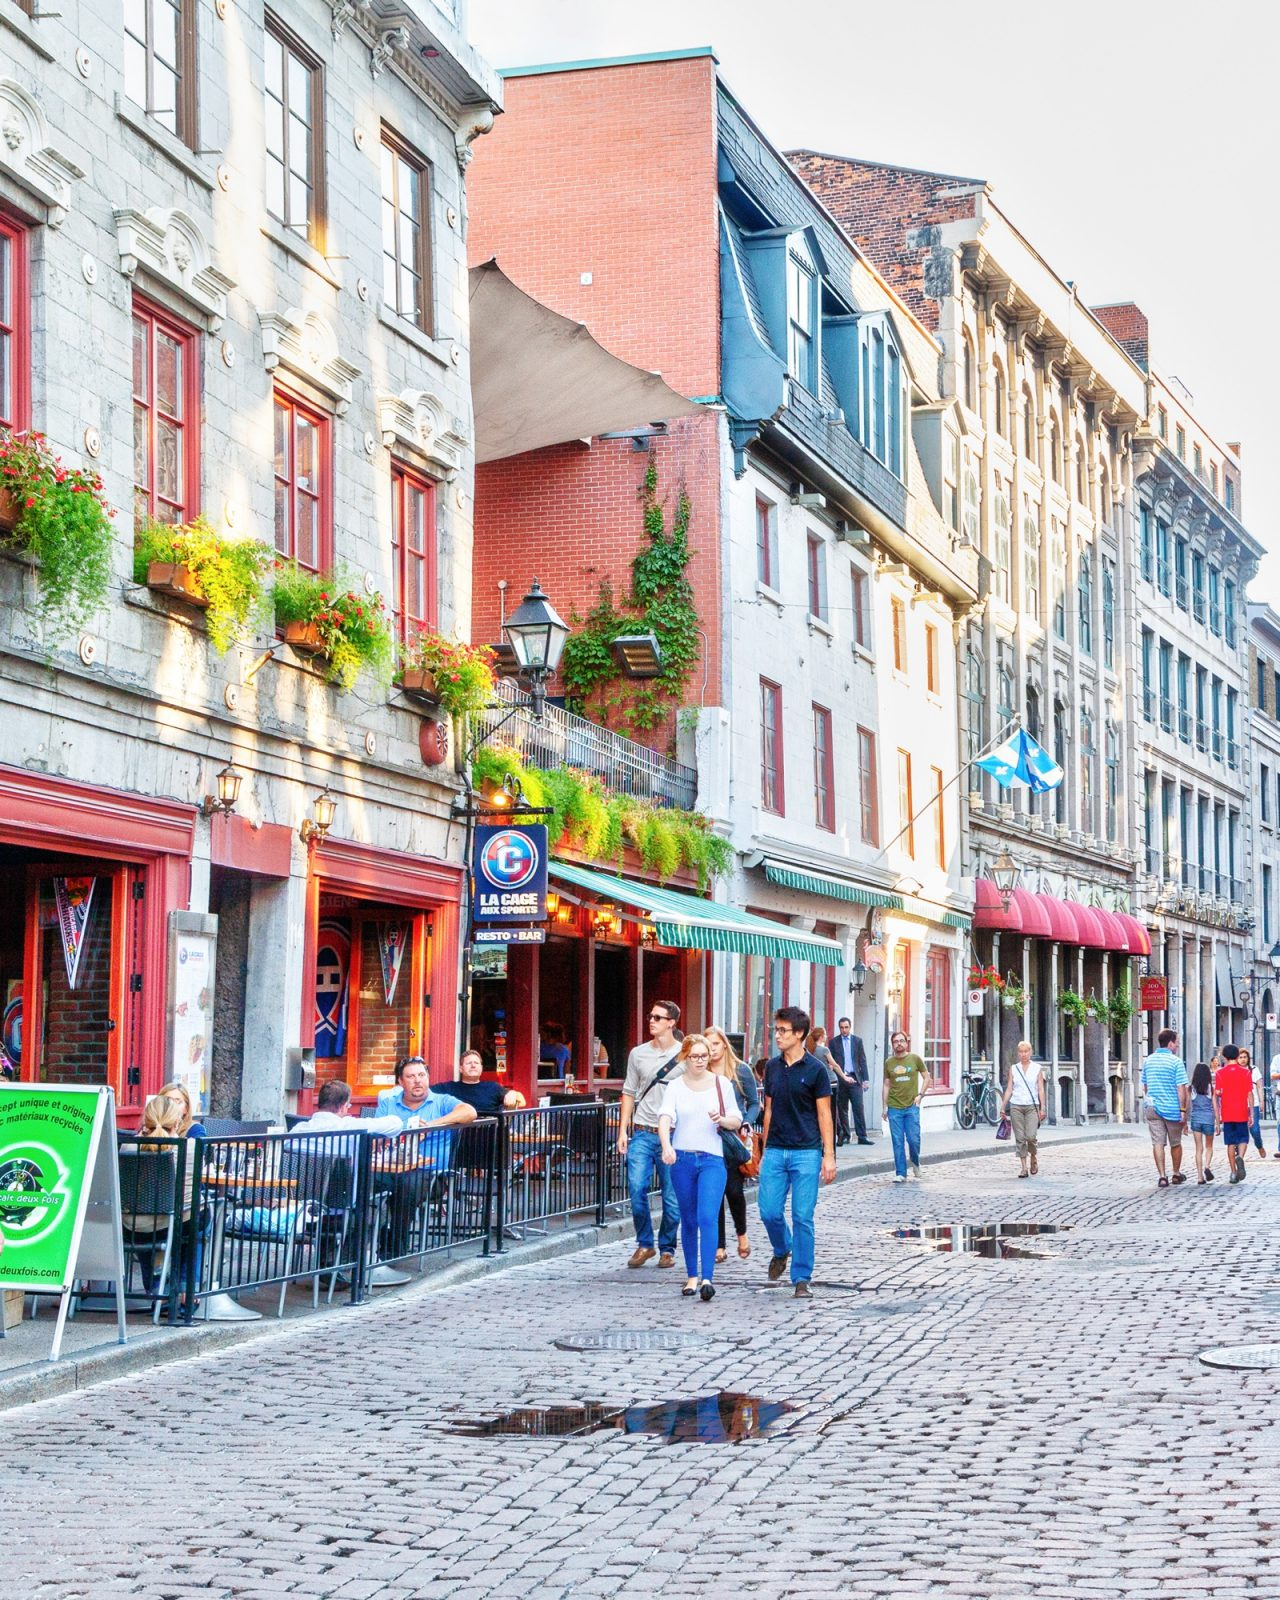 People walking on cobblestone street in Montreal in daytime